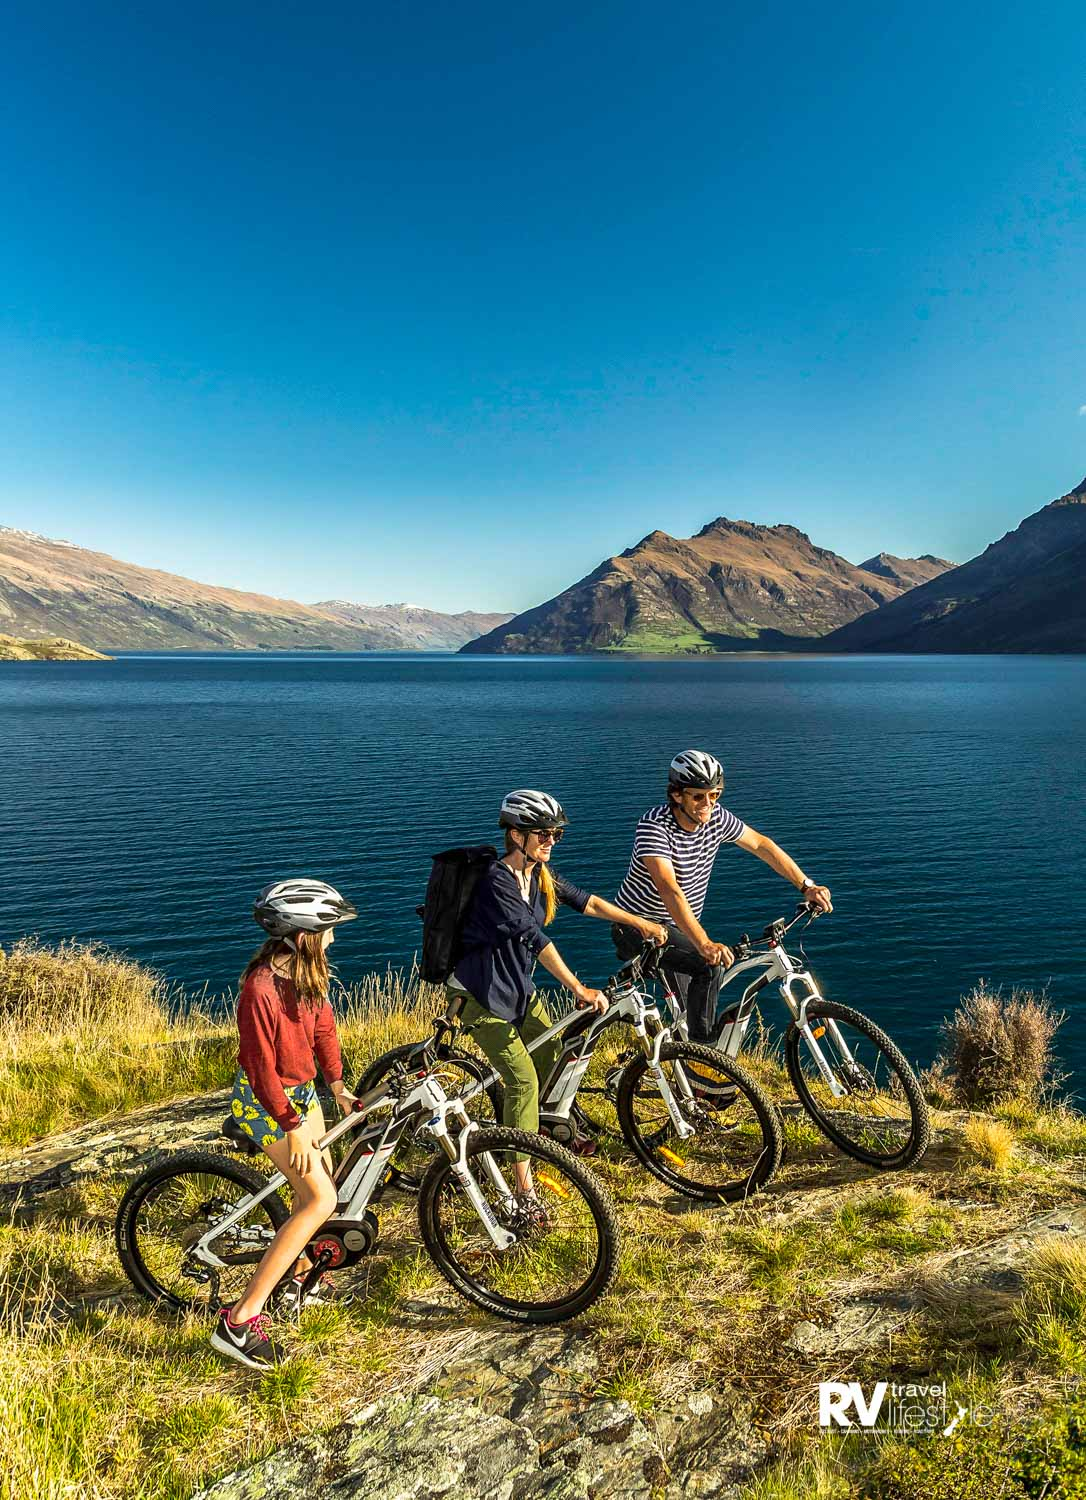 Chargeabout's fancy Moustache e-bikes to hire or purchase (credit: Chargeabout Queenstown)